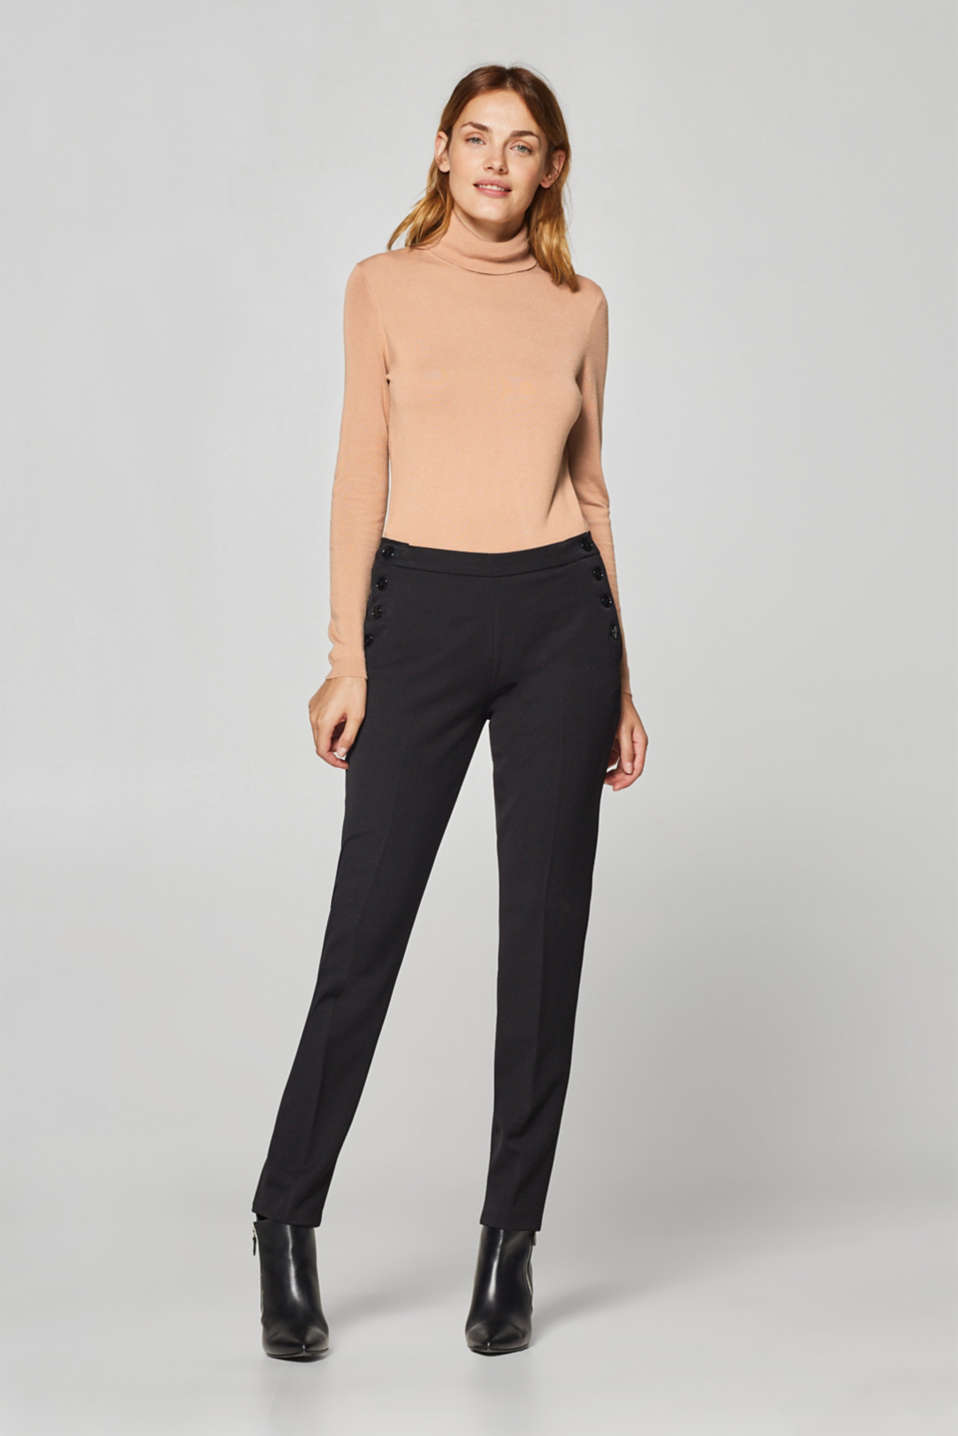 Esprit - Two-way stretch trousers with button plackets